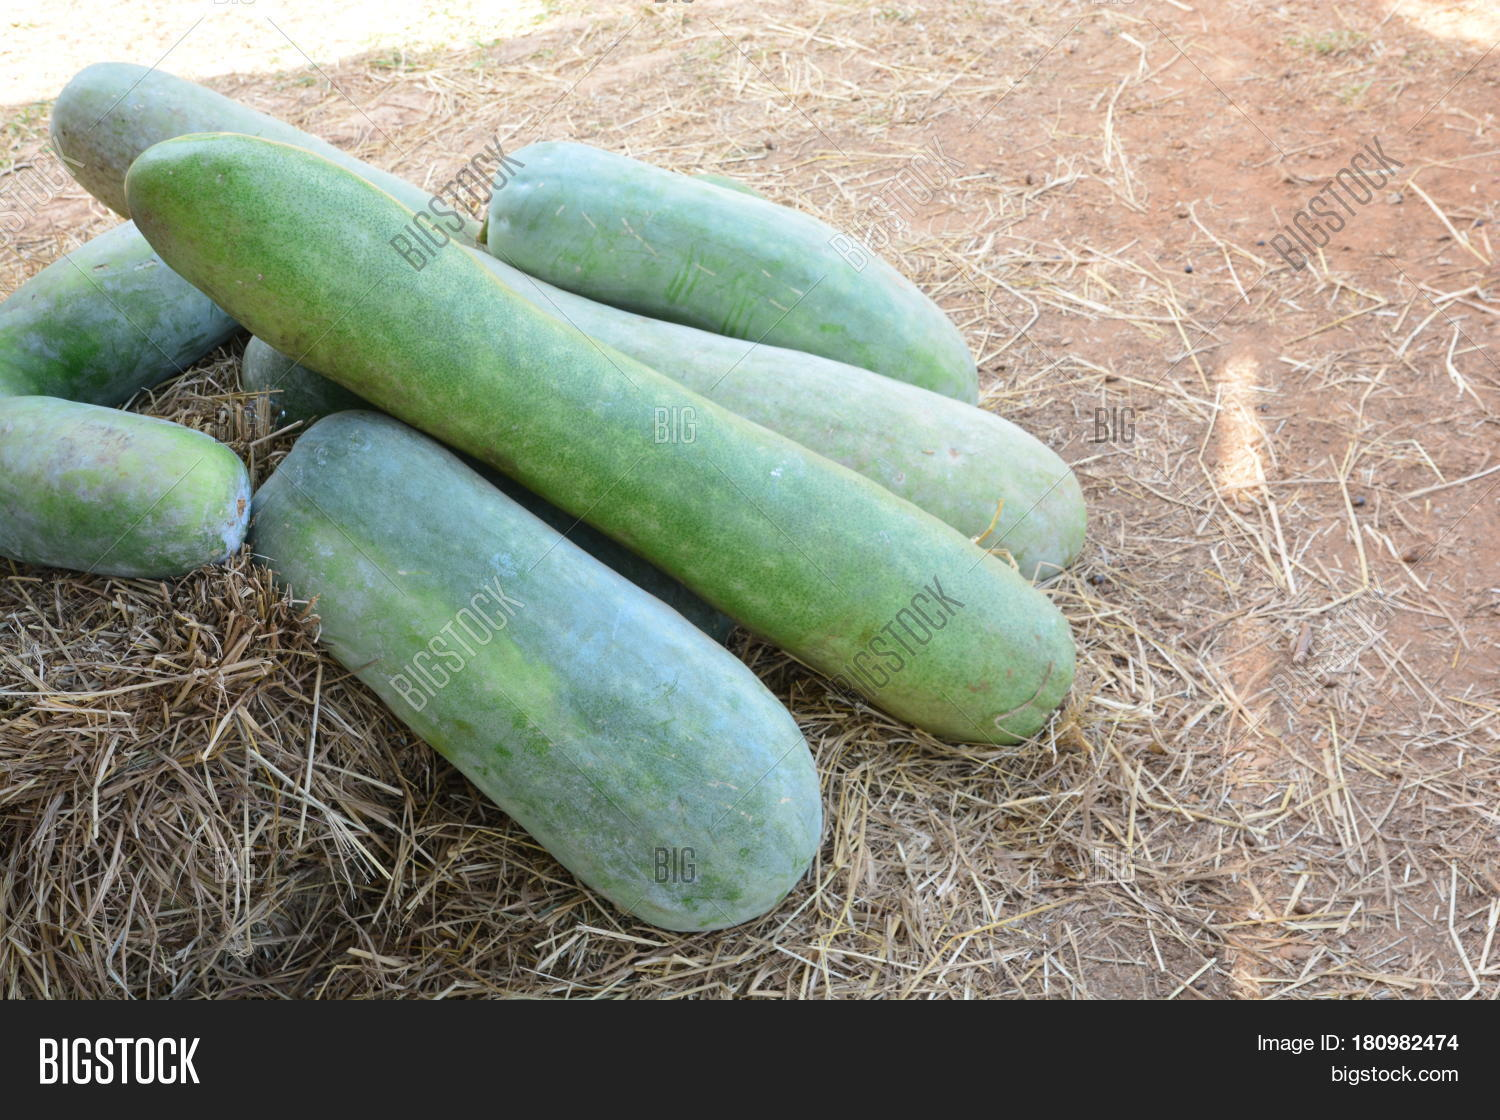 winter melon vegetable garden image u0026 photo bigstock